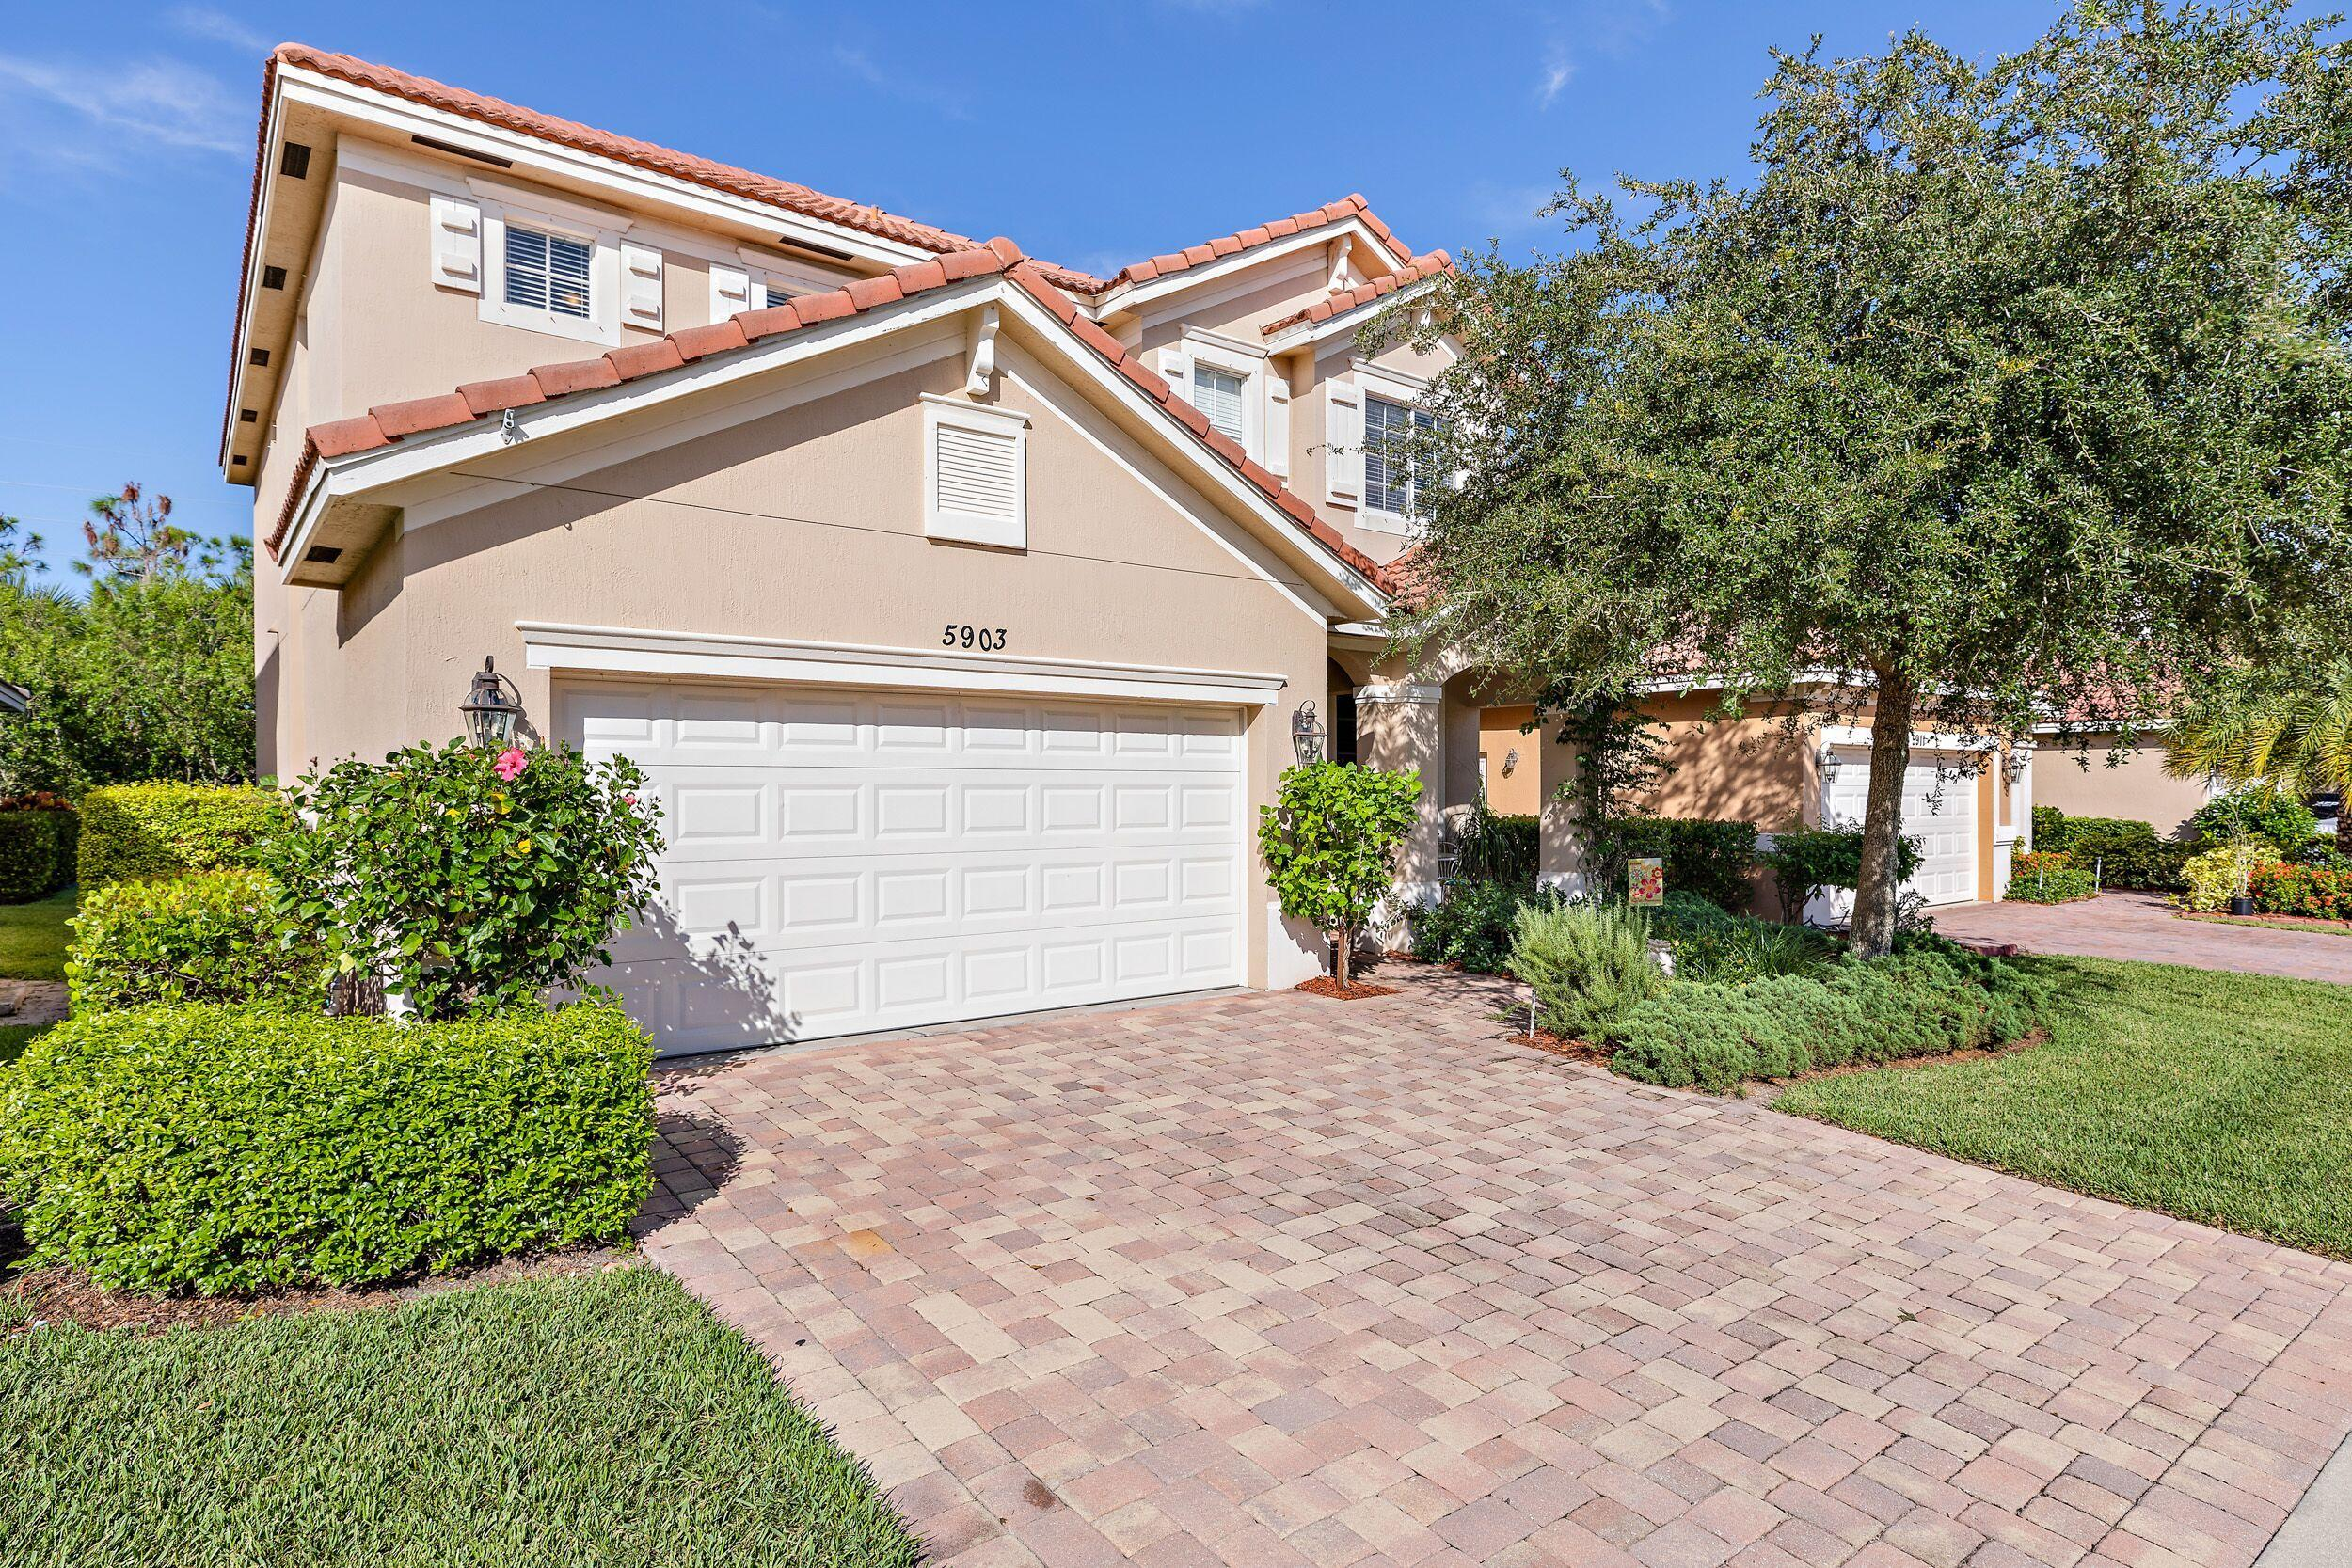 Home for sale in The Oaks Hobe Sound Florida